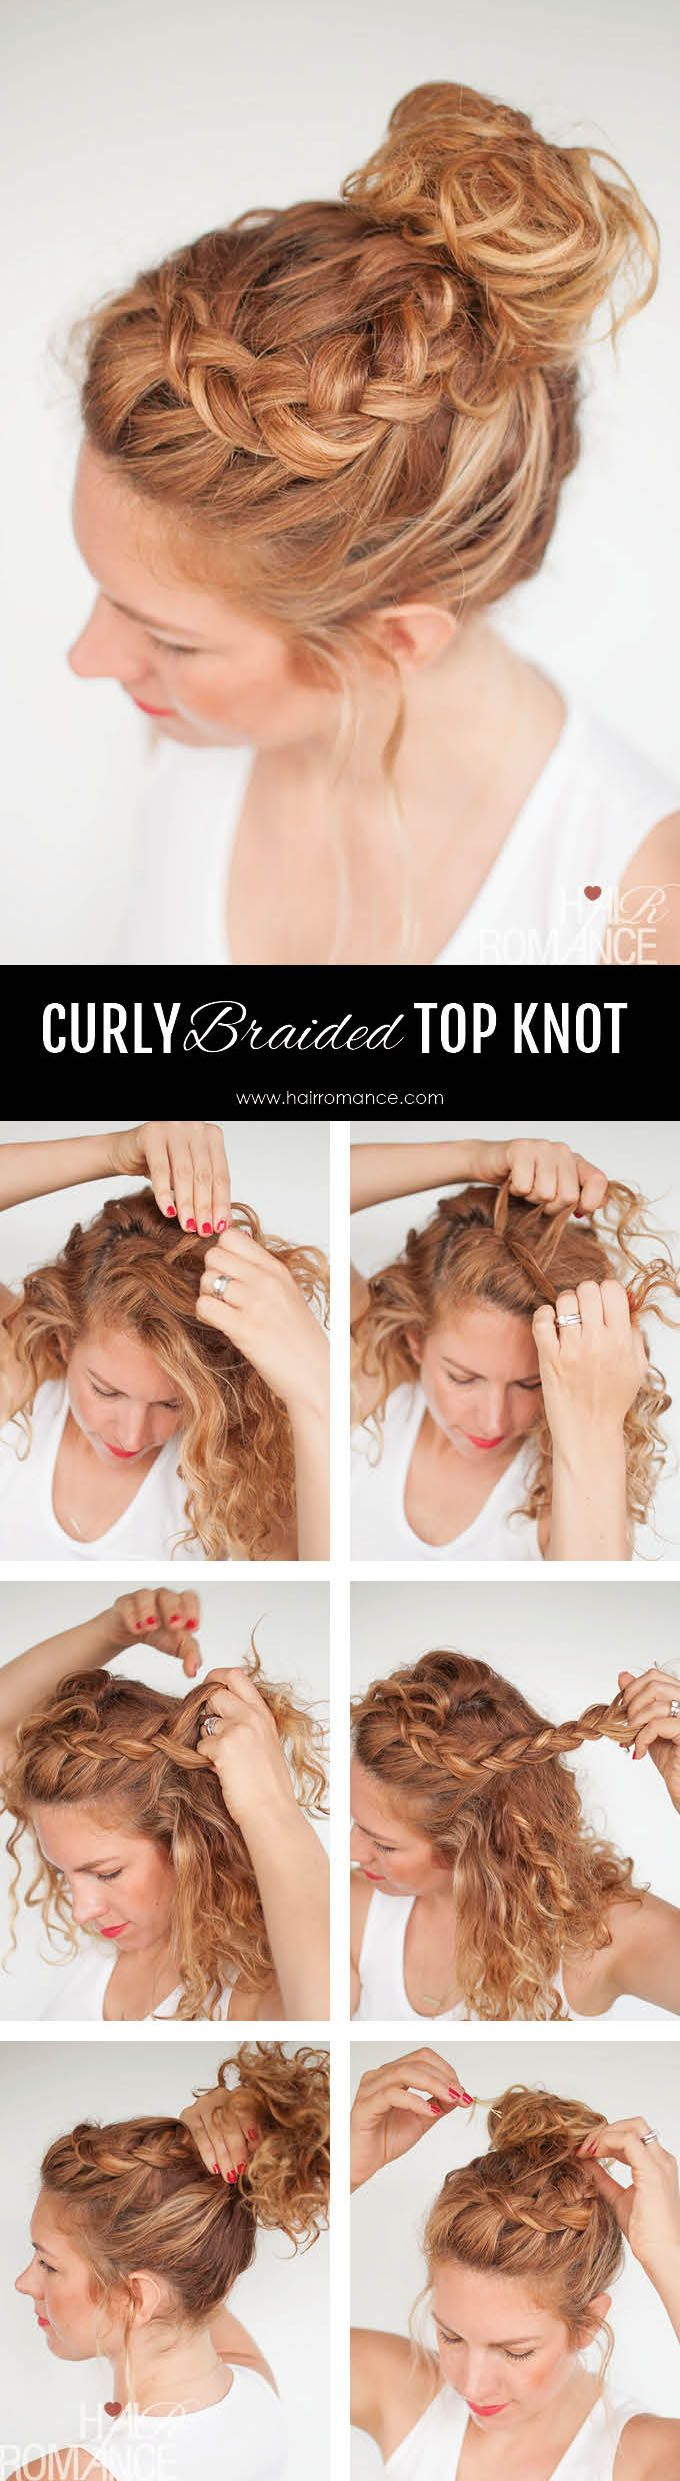 Terrific 1000 Ideas About Curly Hairstyles On Pinterest Hairstyles Hairstyle Inspiration Daily Dogsangcom